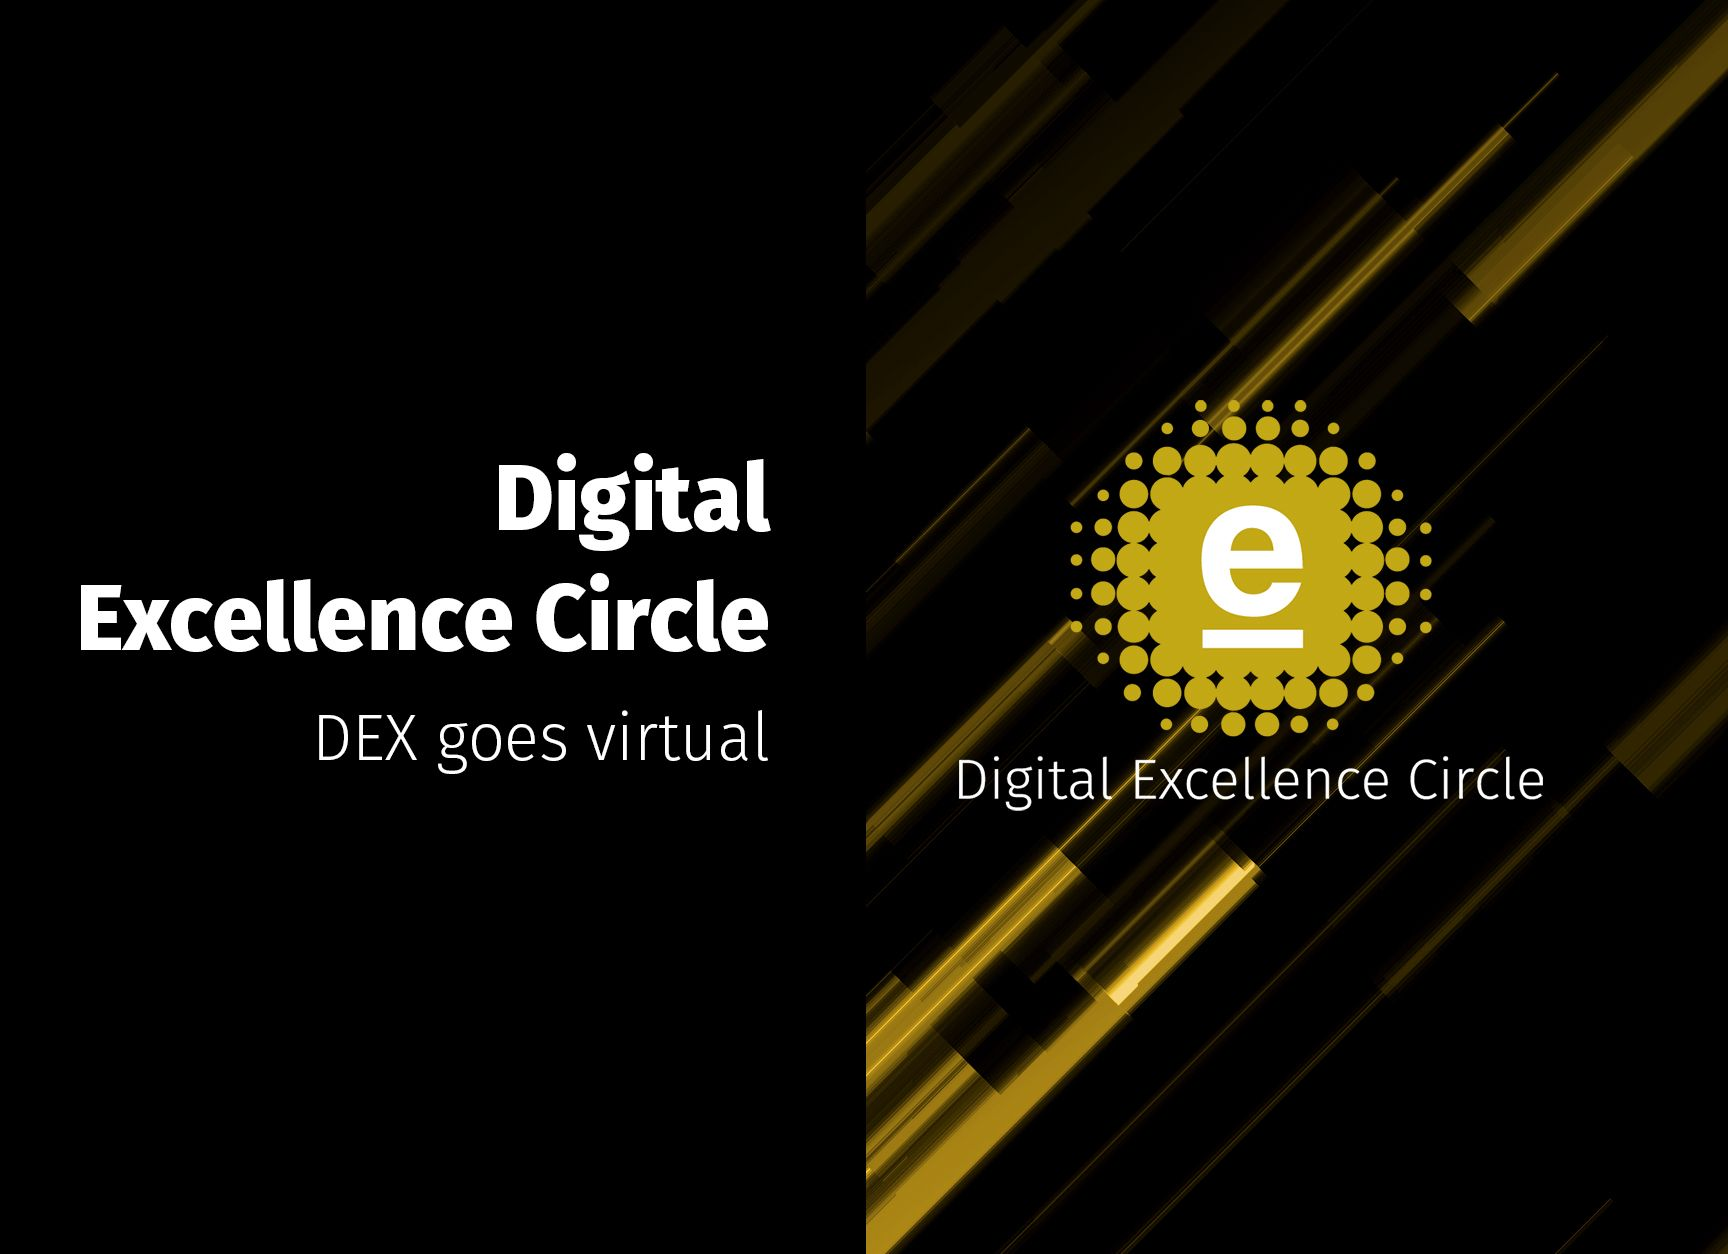 Digital Excellence Circle goes virtual